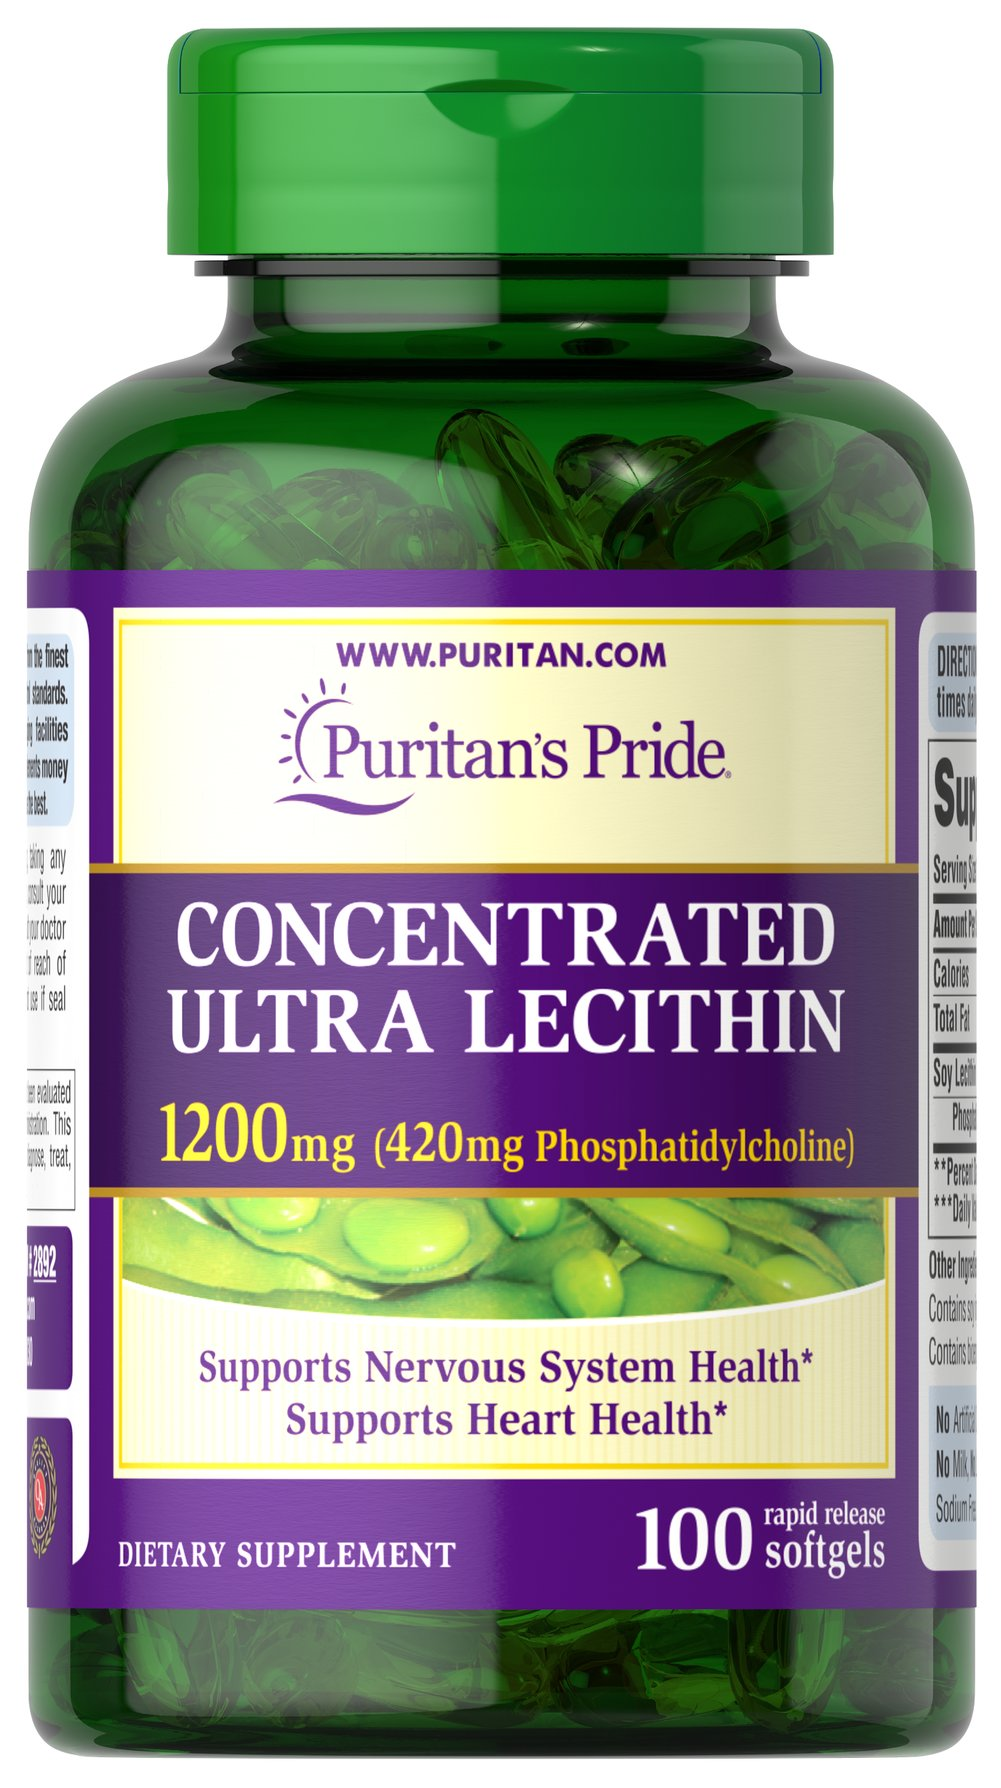 Concentrated Ultra Lecithin 1200 mg <p>Promotes healthy brain function**</p><p>Assists with cardiovascular health**</p><p>Contributes to a healthy nervous system**</p><p>Our highest potency Lecithin product to date++</p><p>One softgel provides you with a whopping 420 mg of naturally sourced Phosphatidylcholine, a vital part of the B Vitamin Complex.**</p> 100 Softgels 1200 mg $13.49